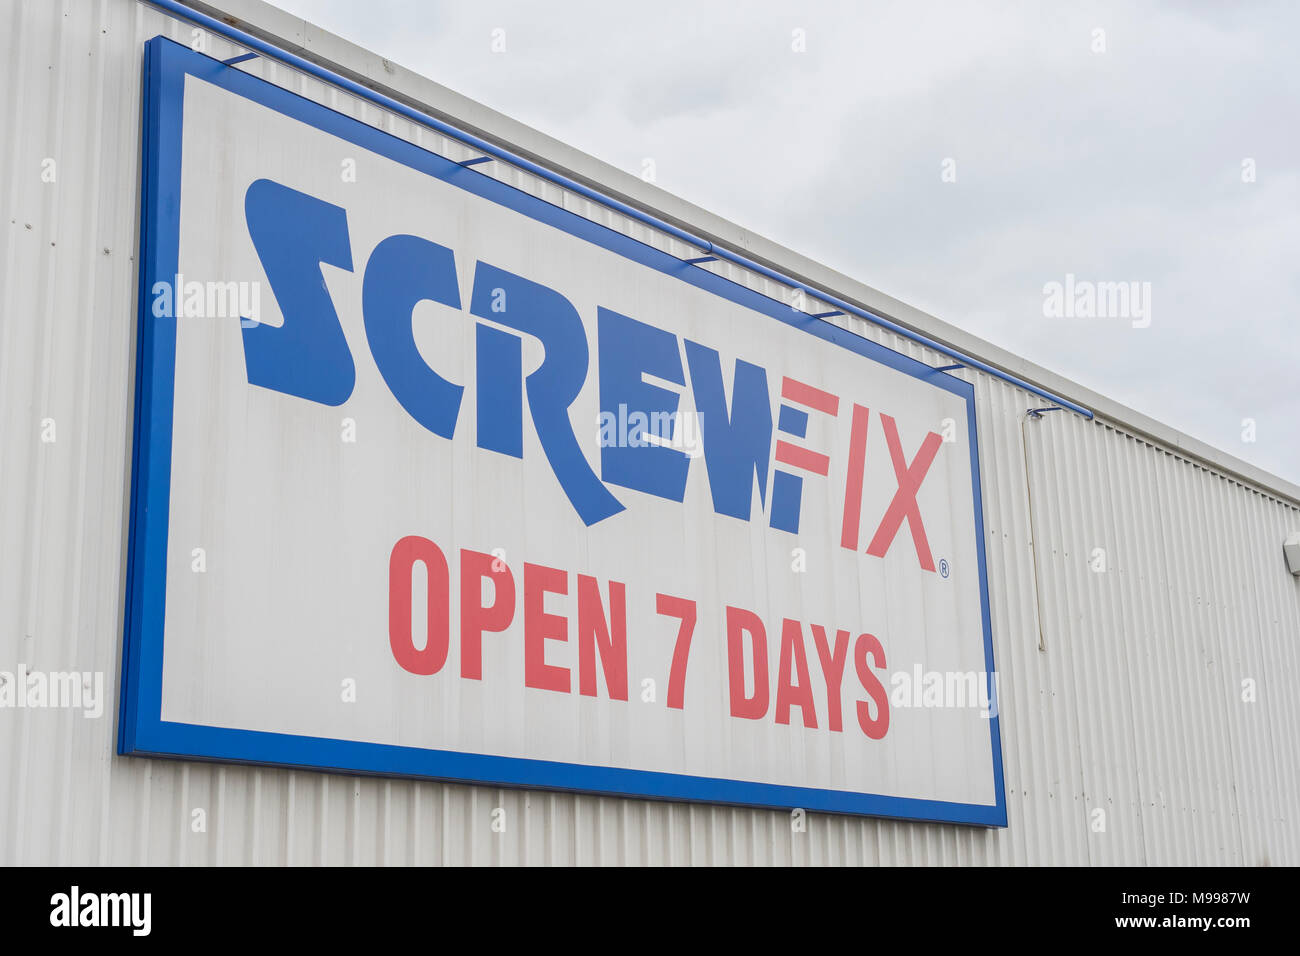 Exterior of Plymouth depot for Screwfix. - Stock Image